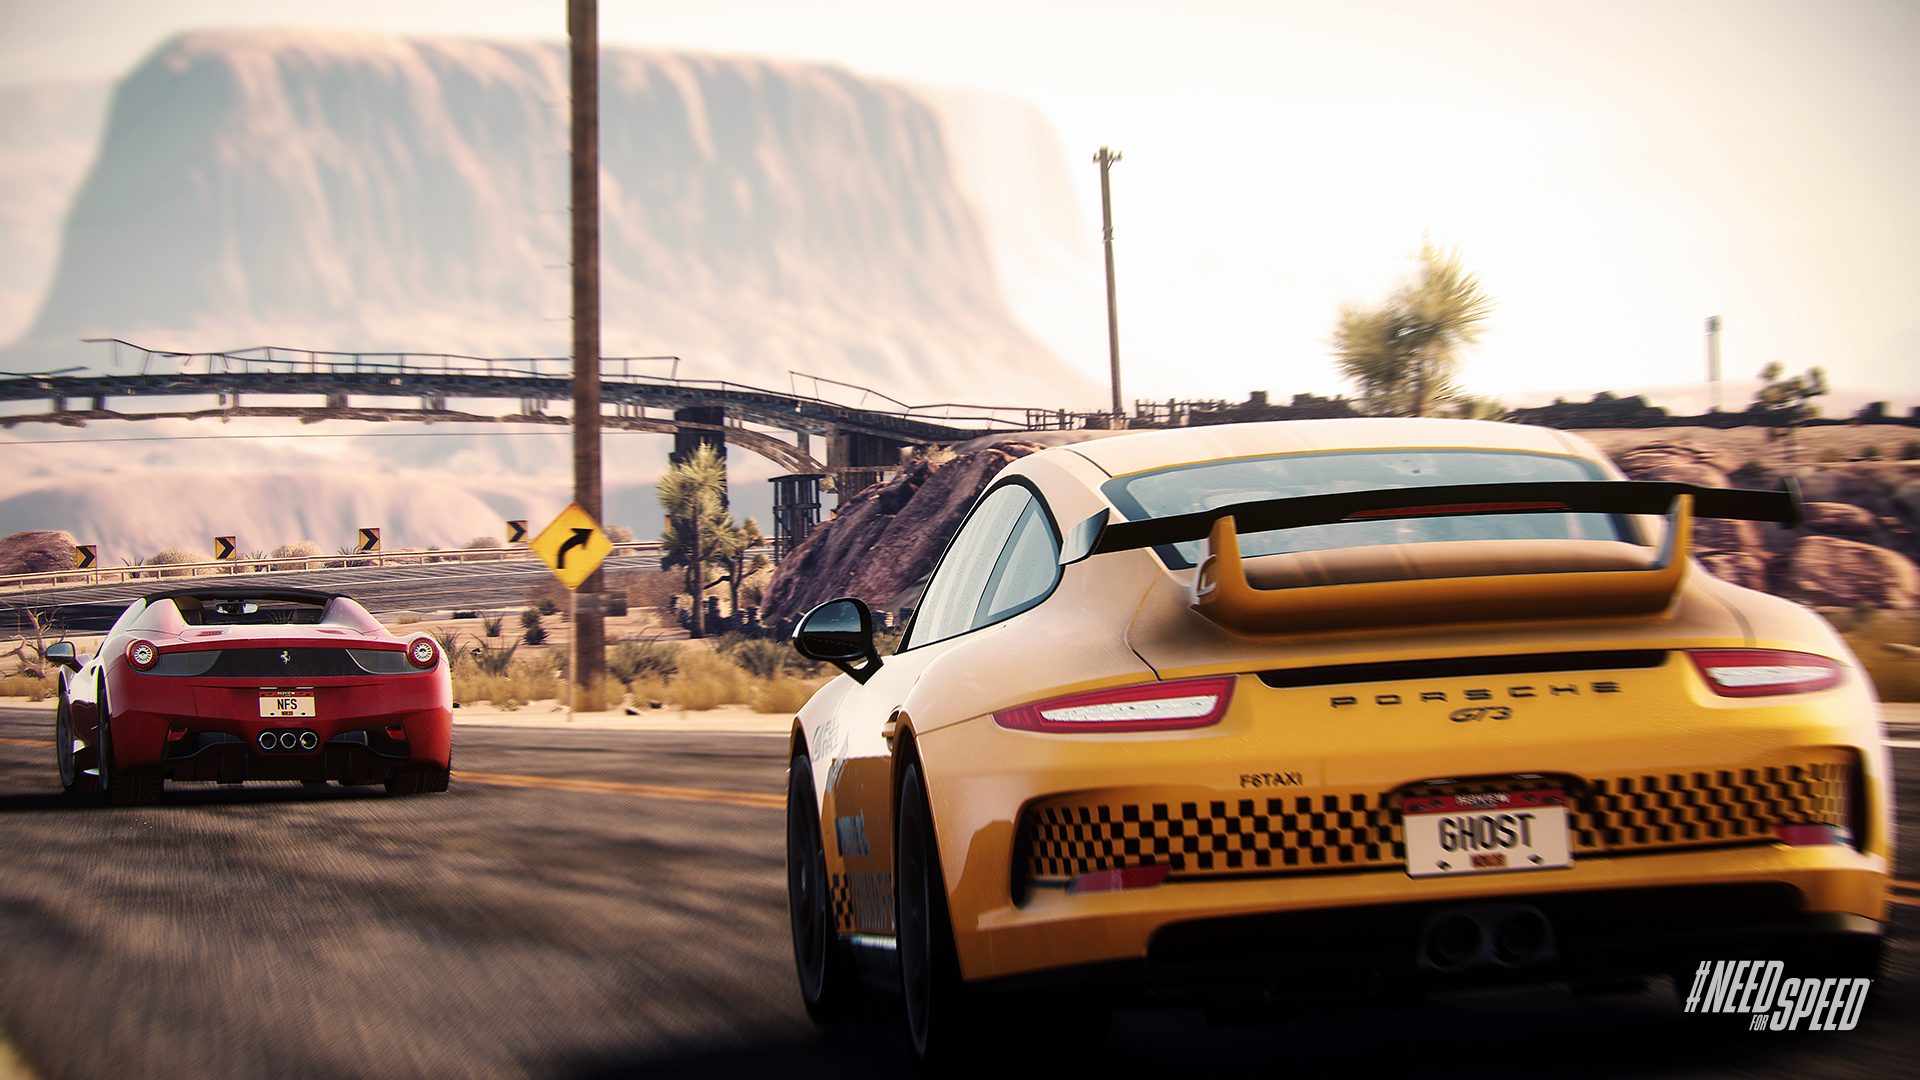 hd need for speed wallpaper